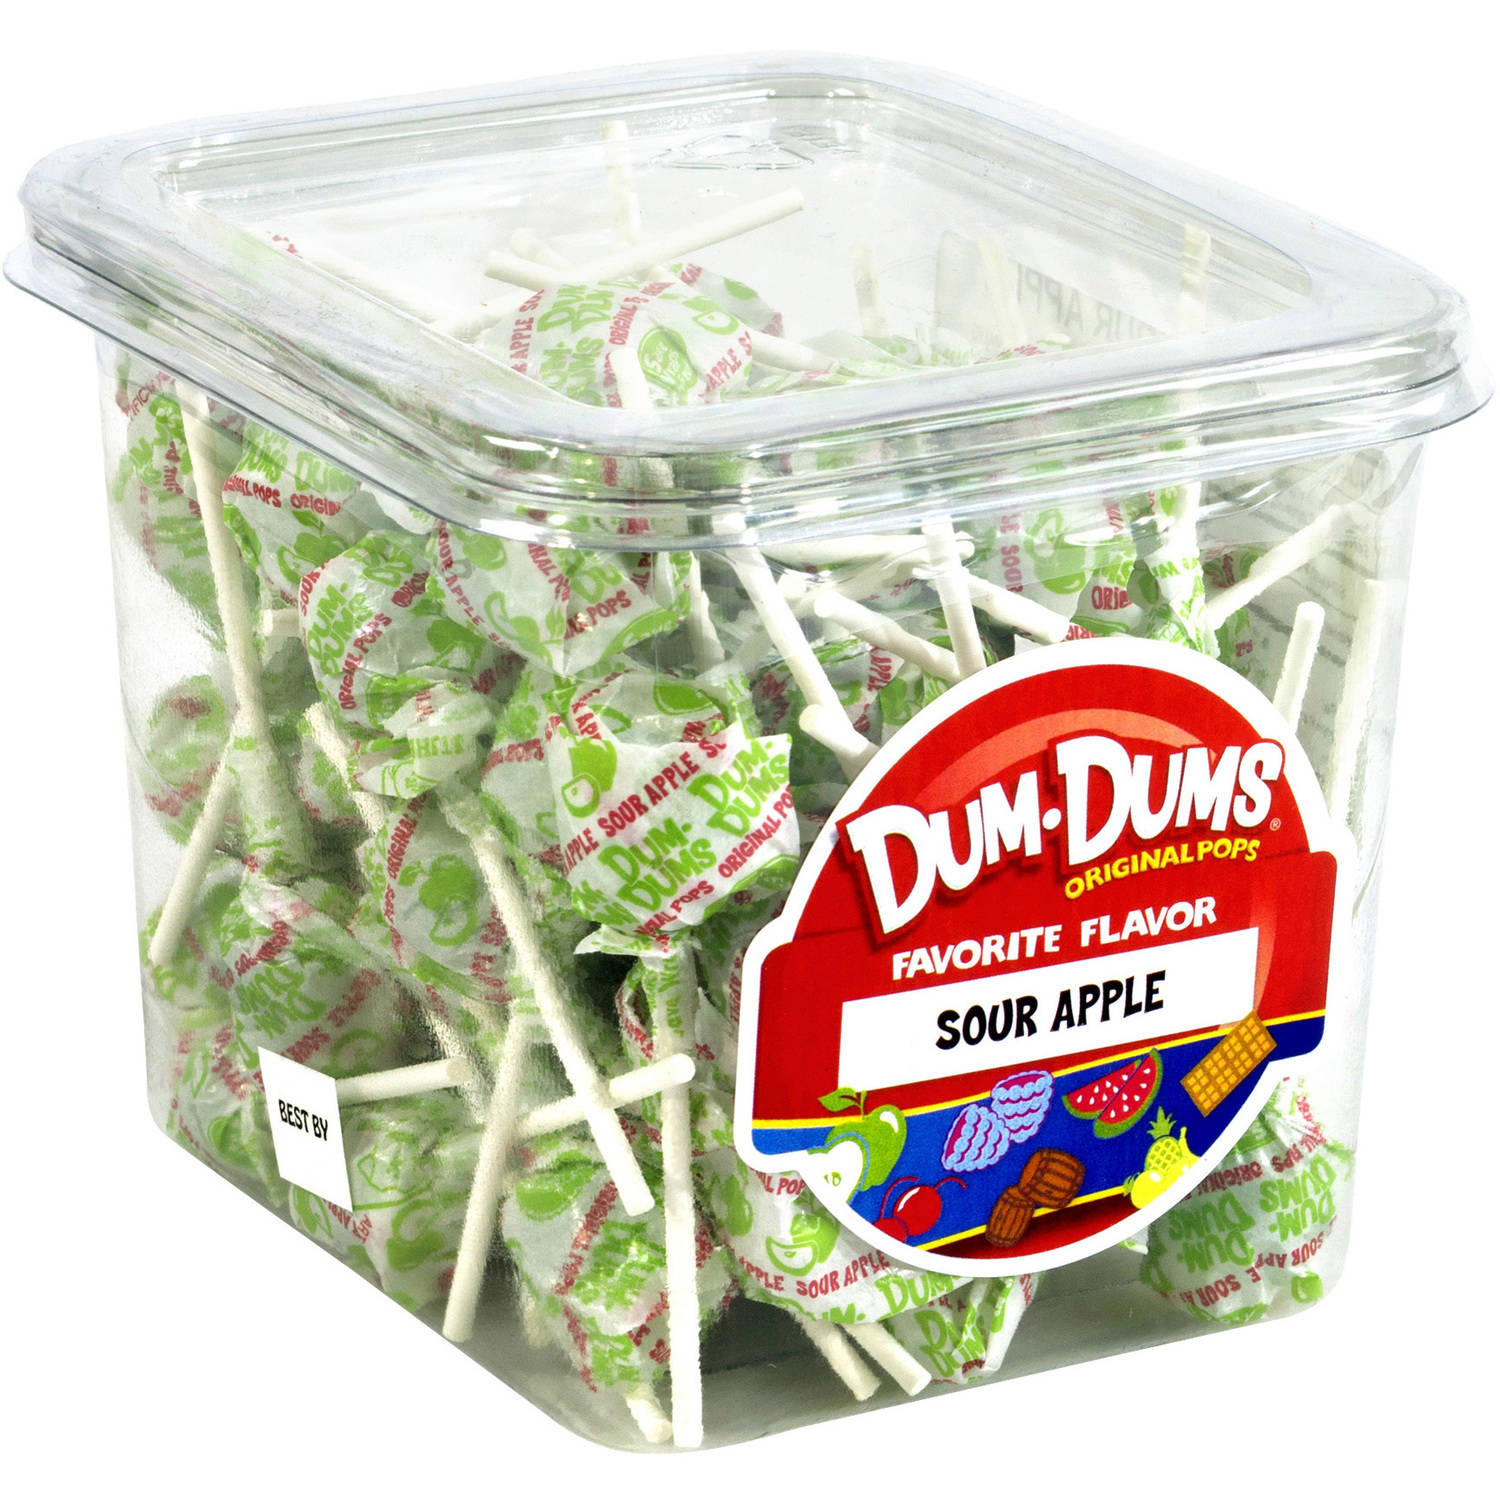 Dum Dums Original Pops Sour Apple Lollipops, 68 count, 1 lb by